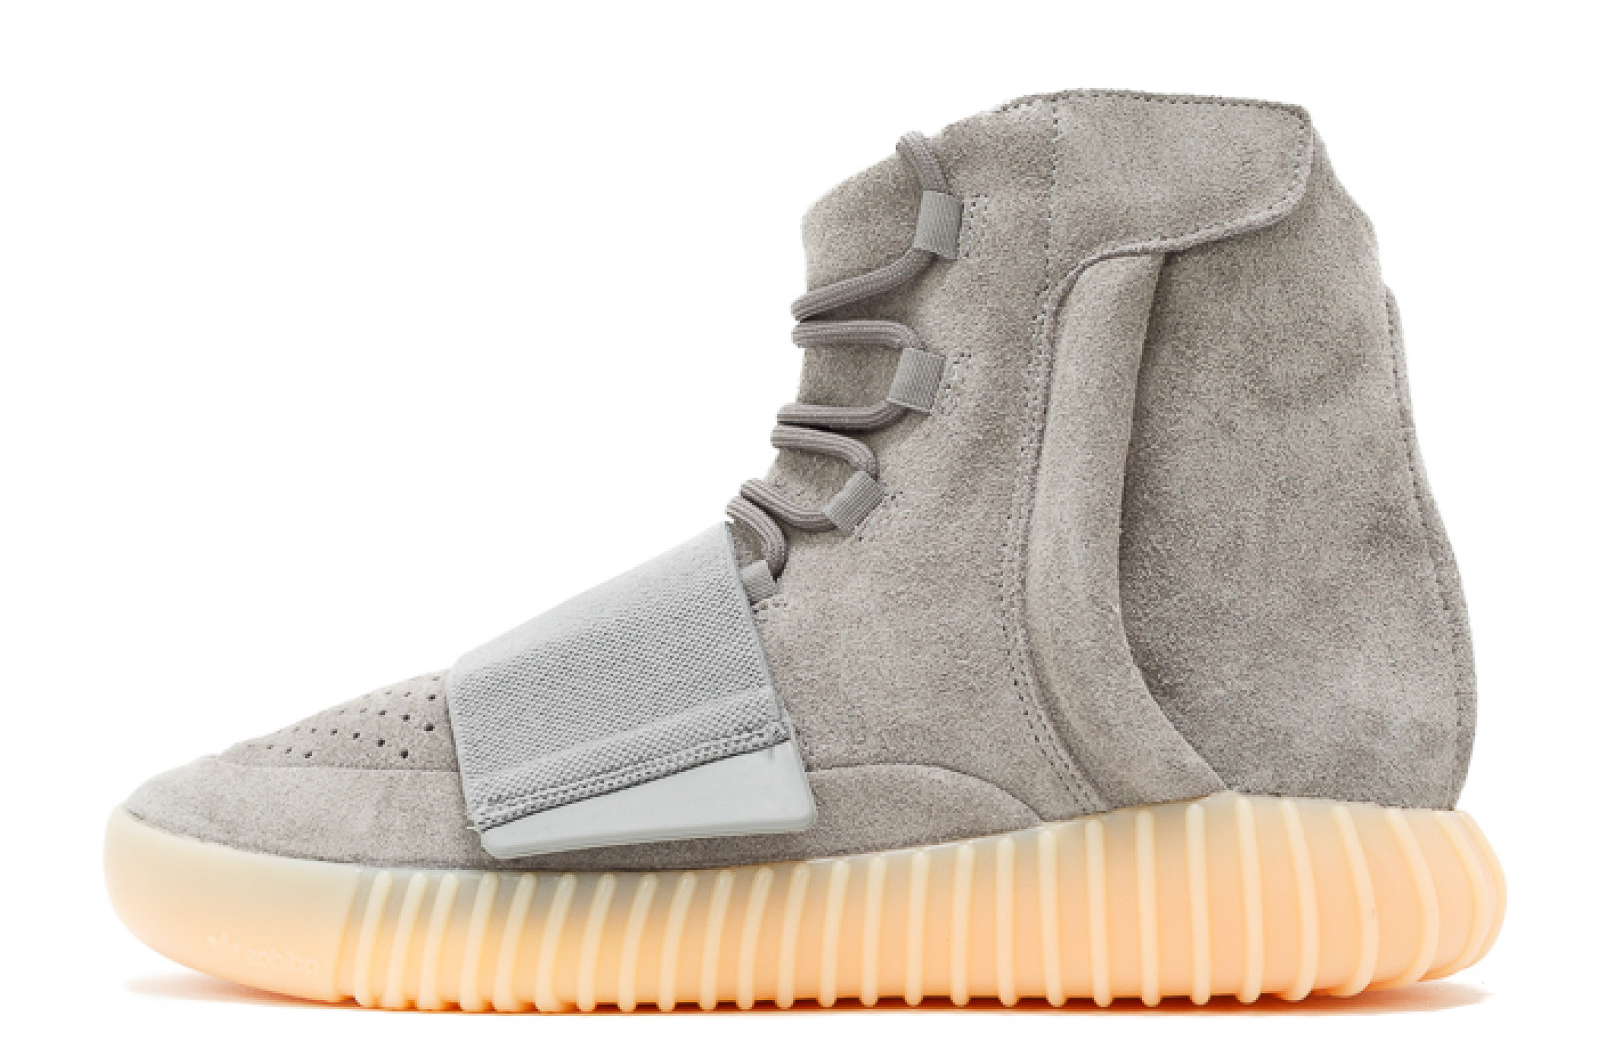 YEEZY BOOST 750 'Glow in the Dark' BB1840